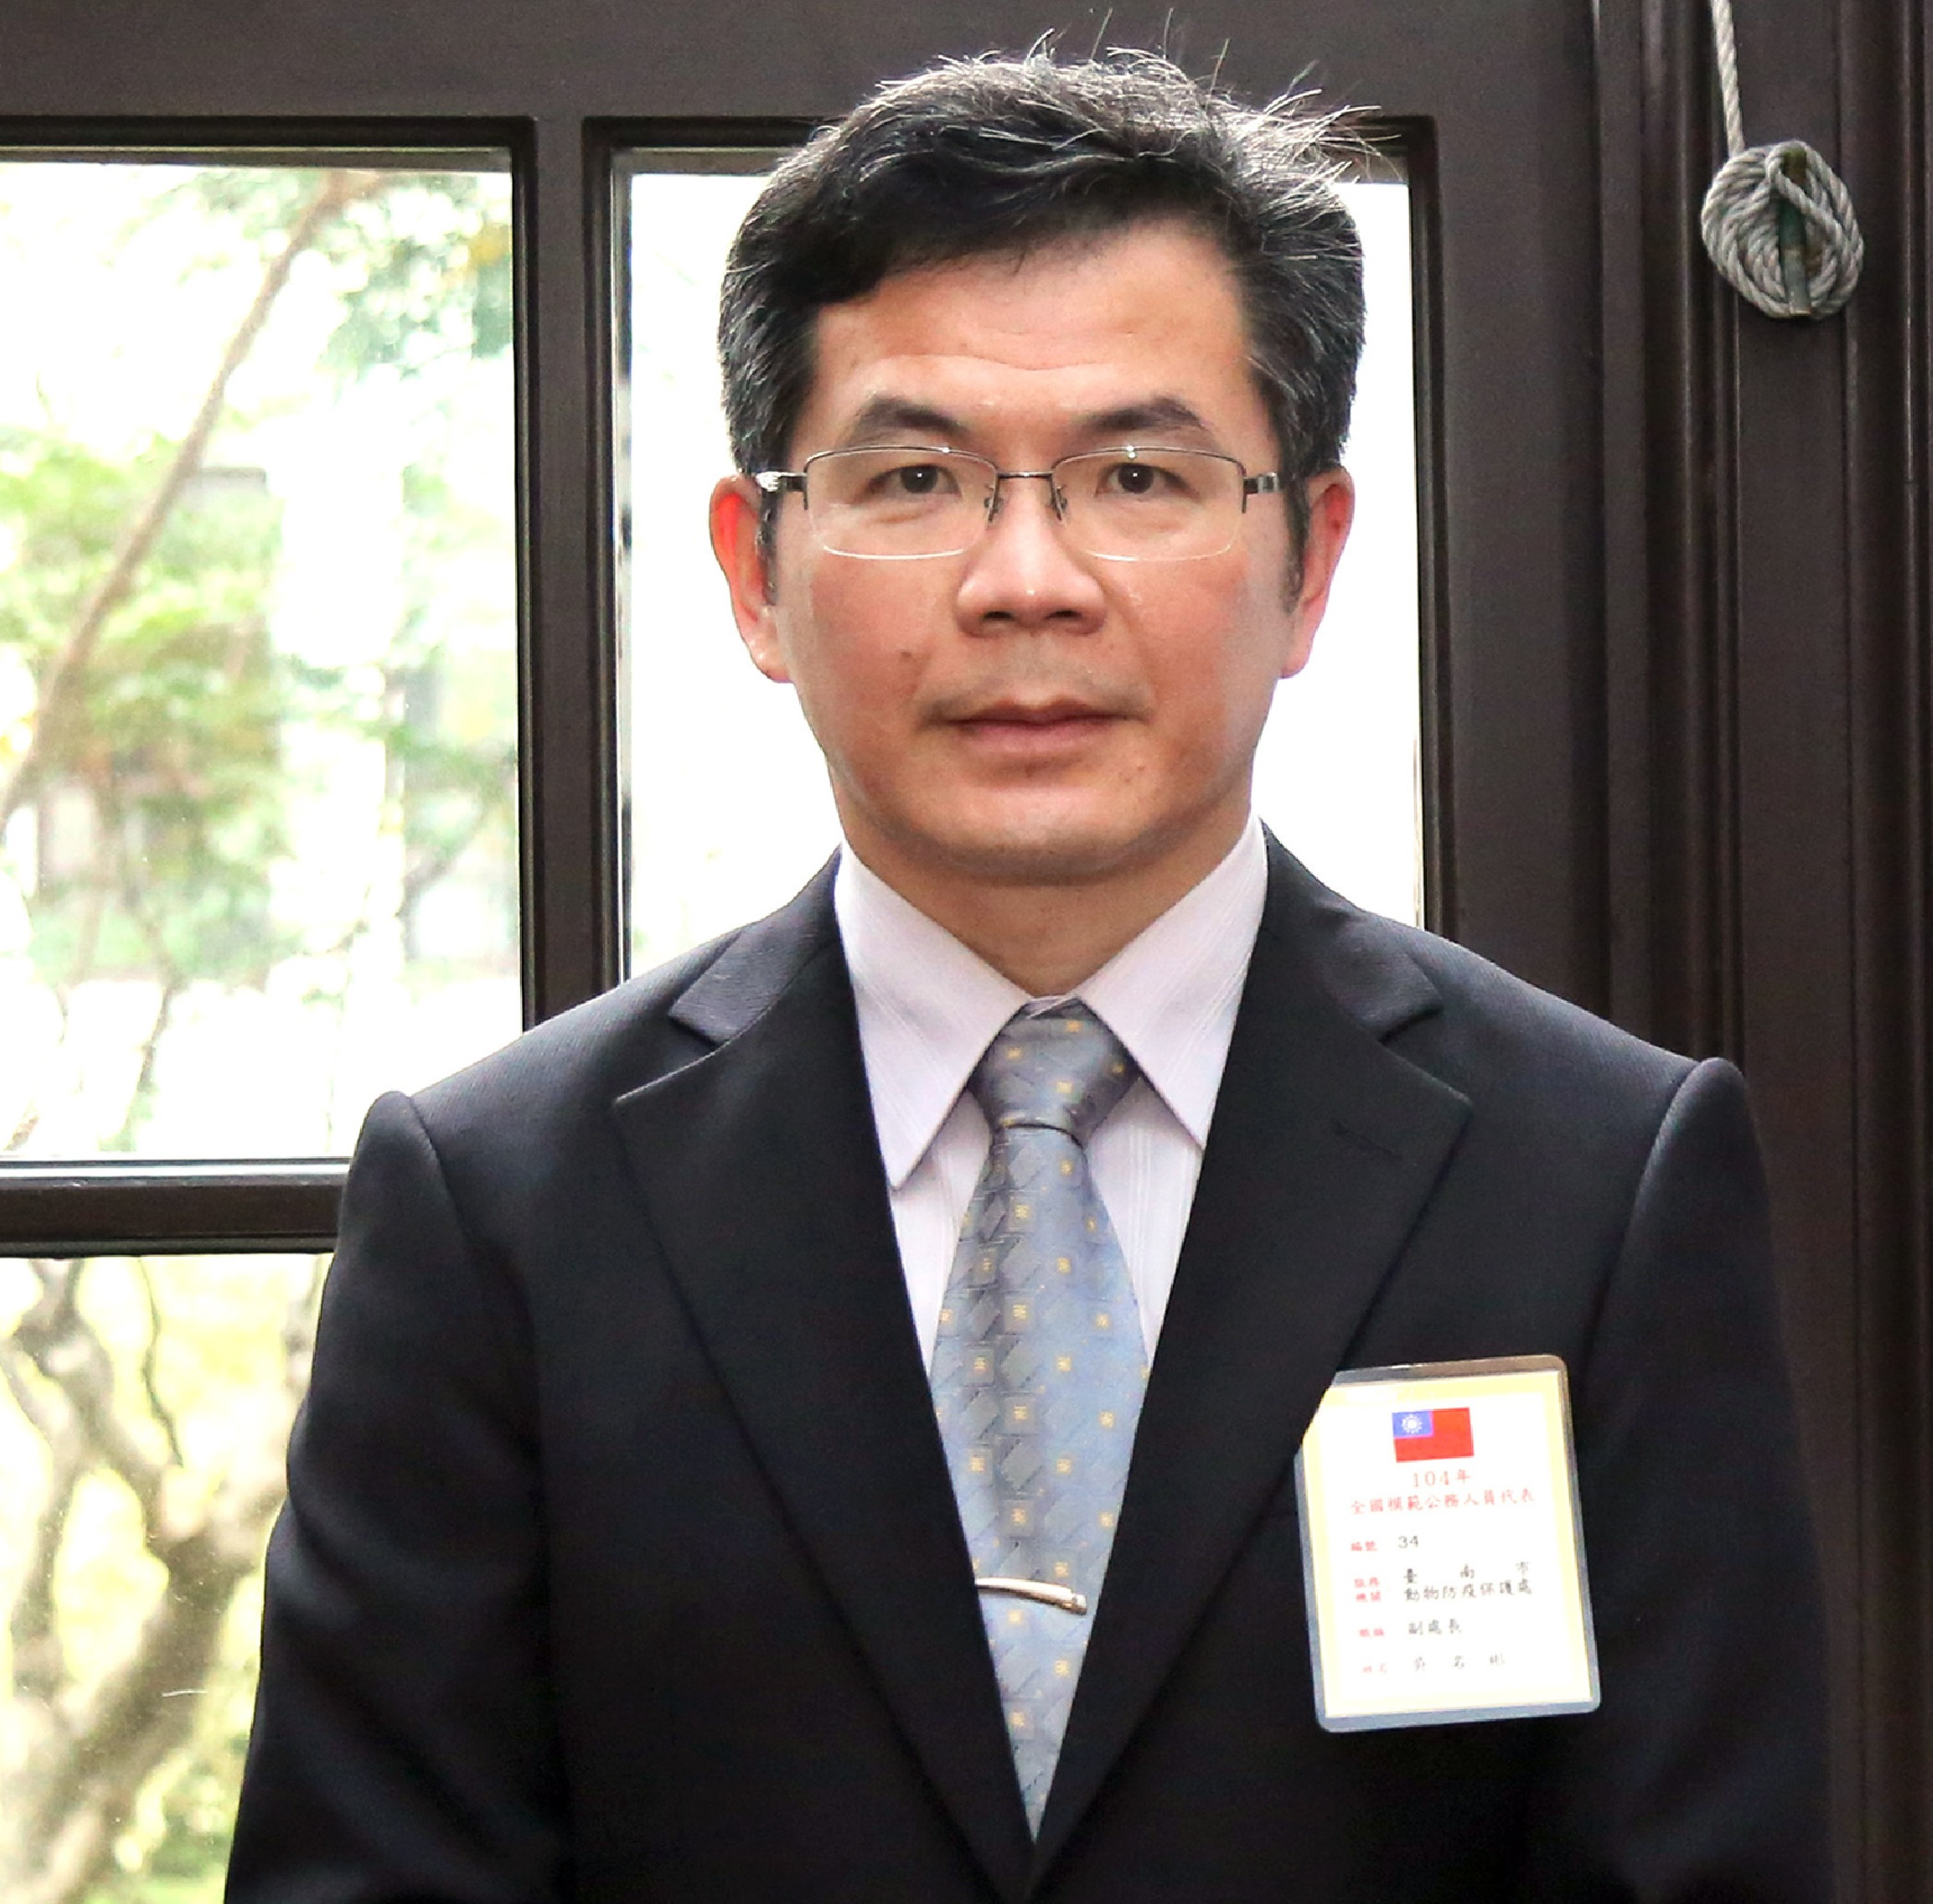 Wu, Ming-Pin, the director of Tainan City Animal Health Inspection and Protection Office